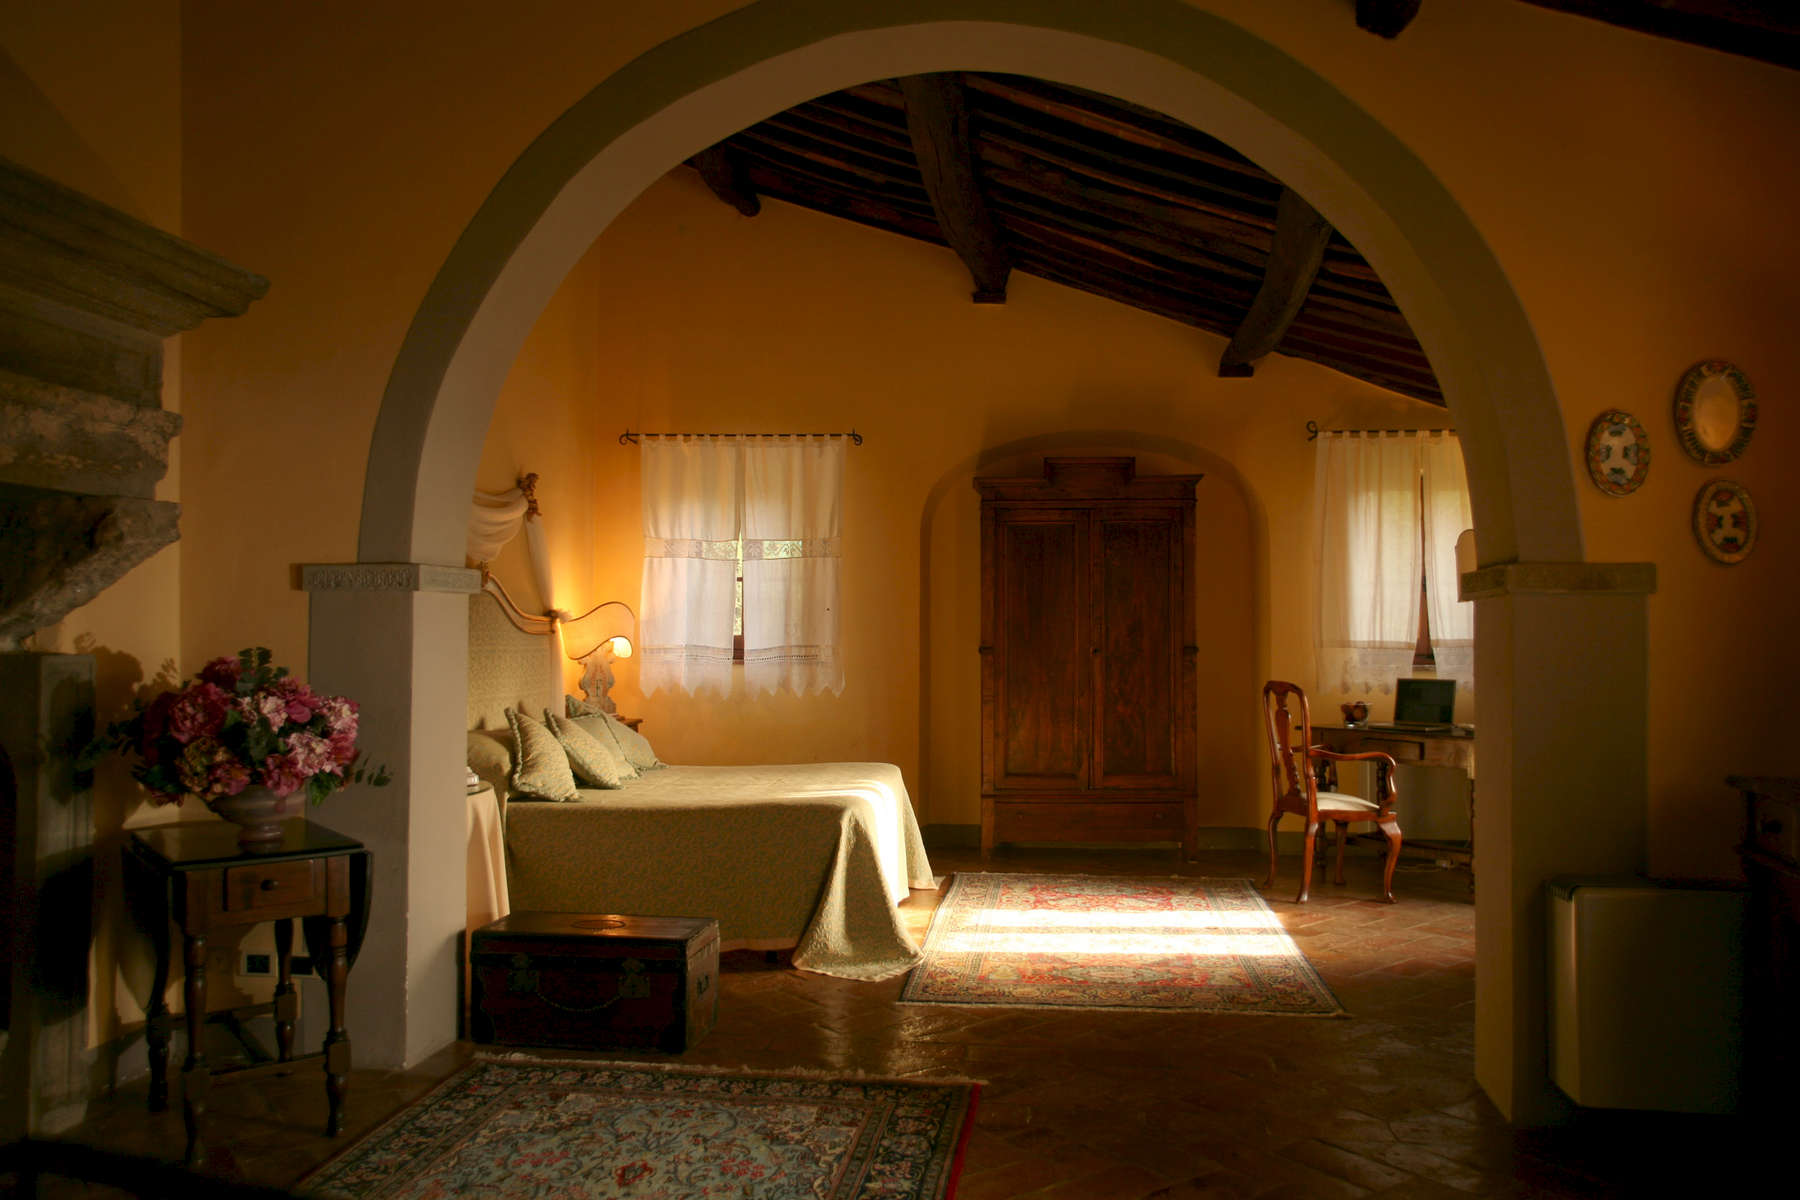 bed-breakfast-tuscany-1.jpg